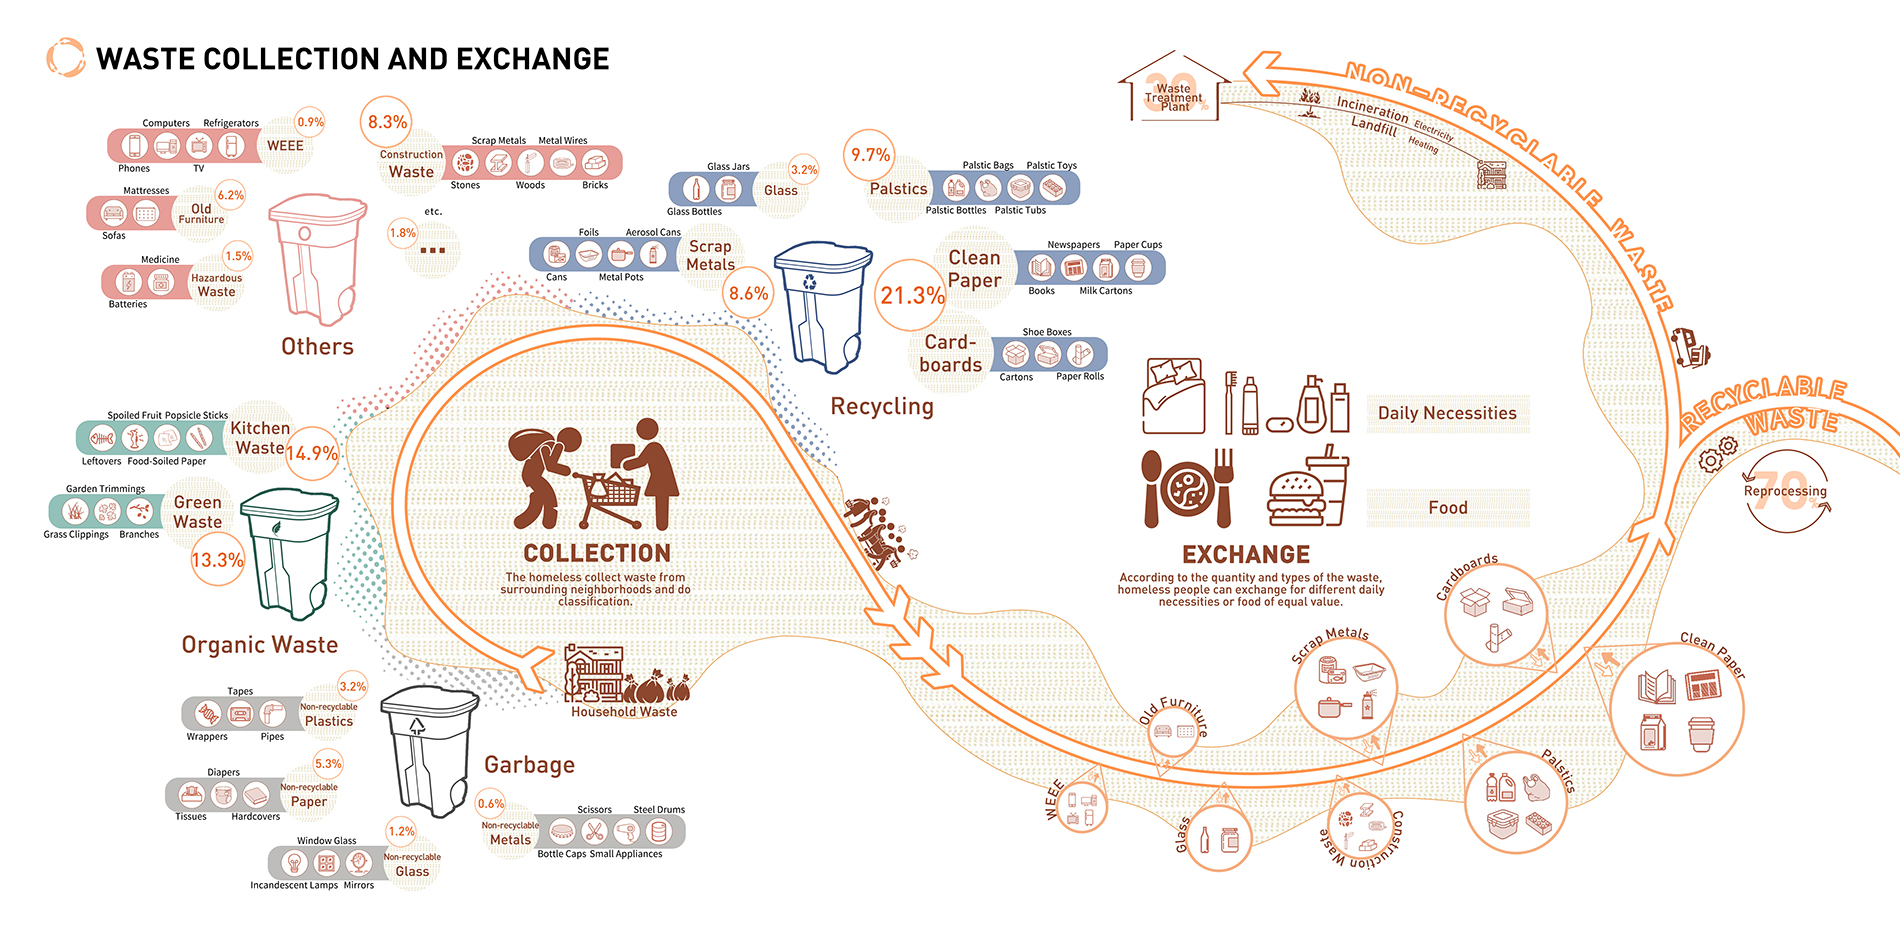 Waste collection and exchange